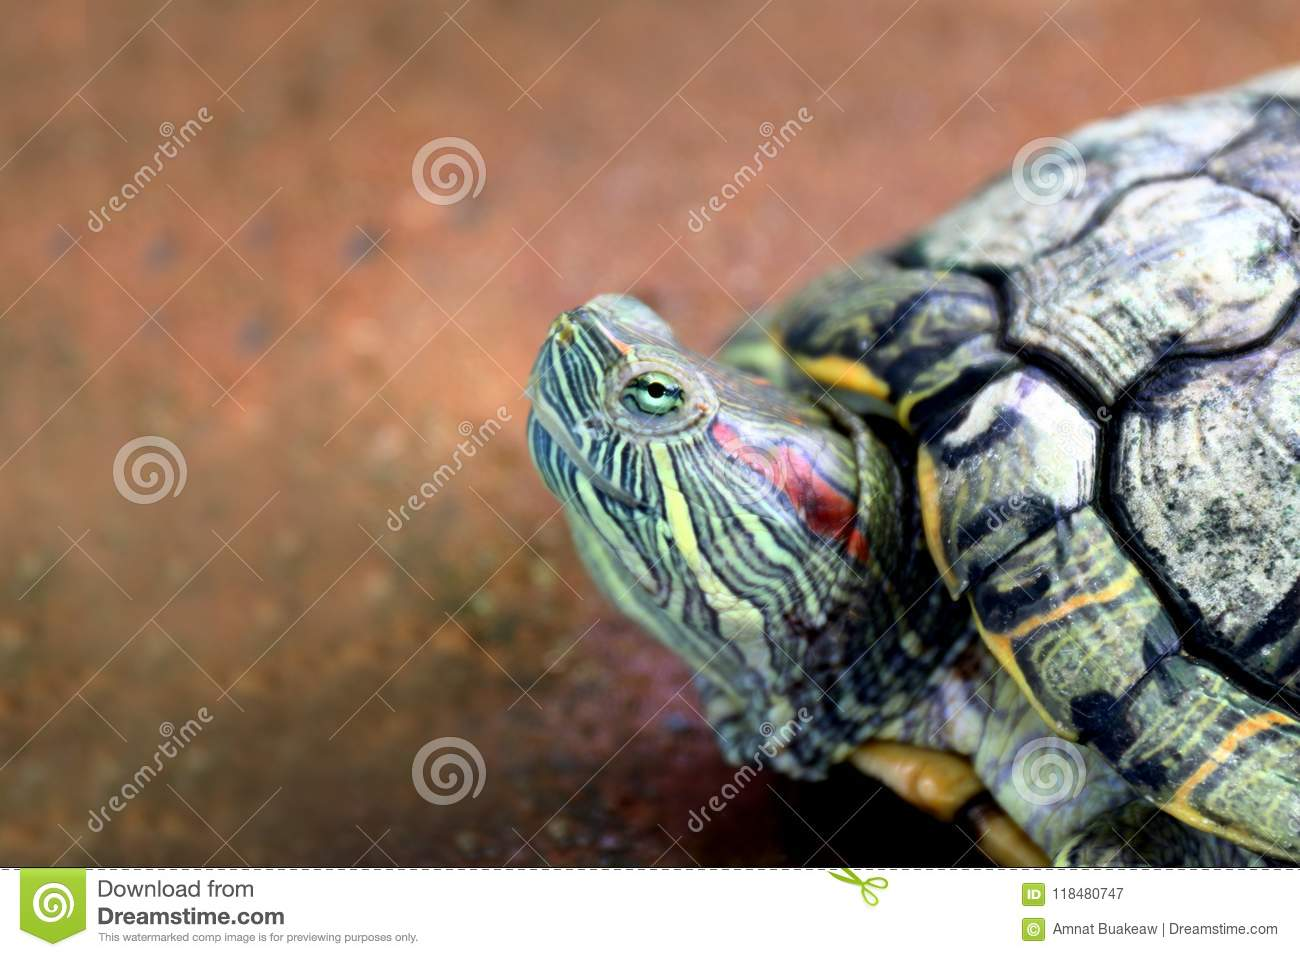 18 Amazon Head Red Turtle Photos Free Royalty Free Stock Photos From Dreamstime